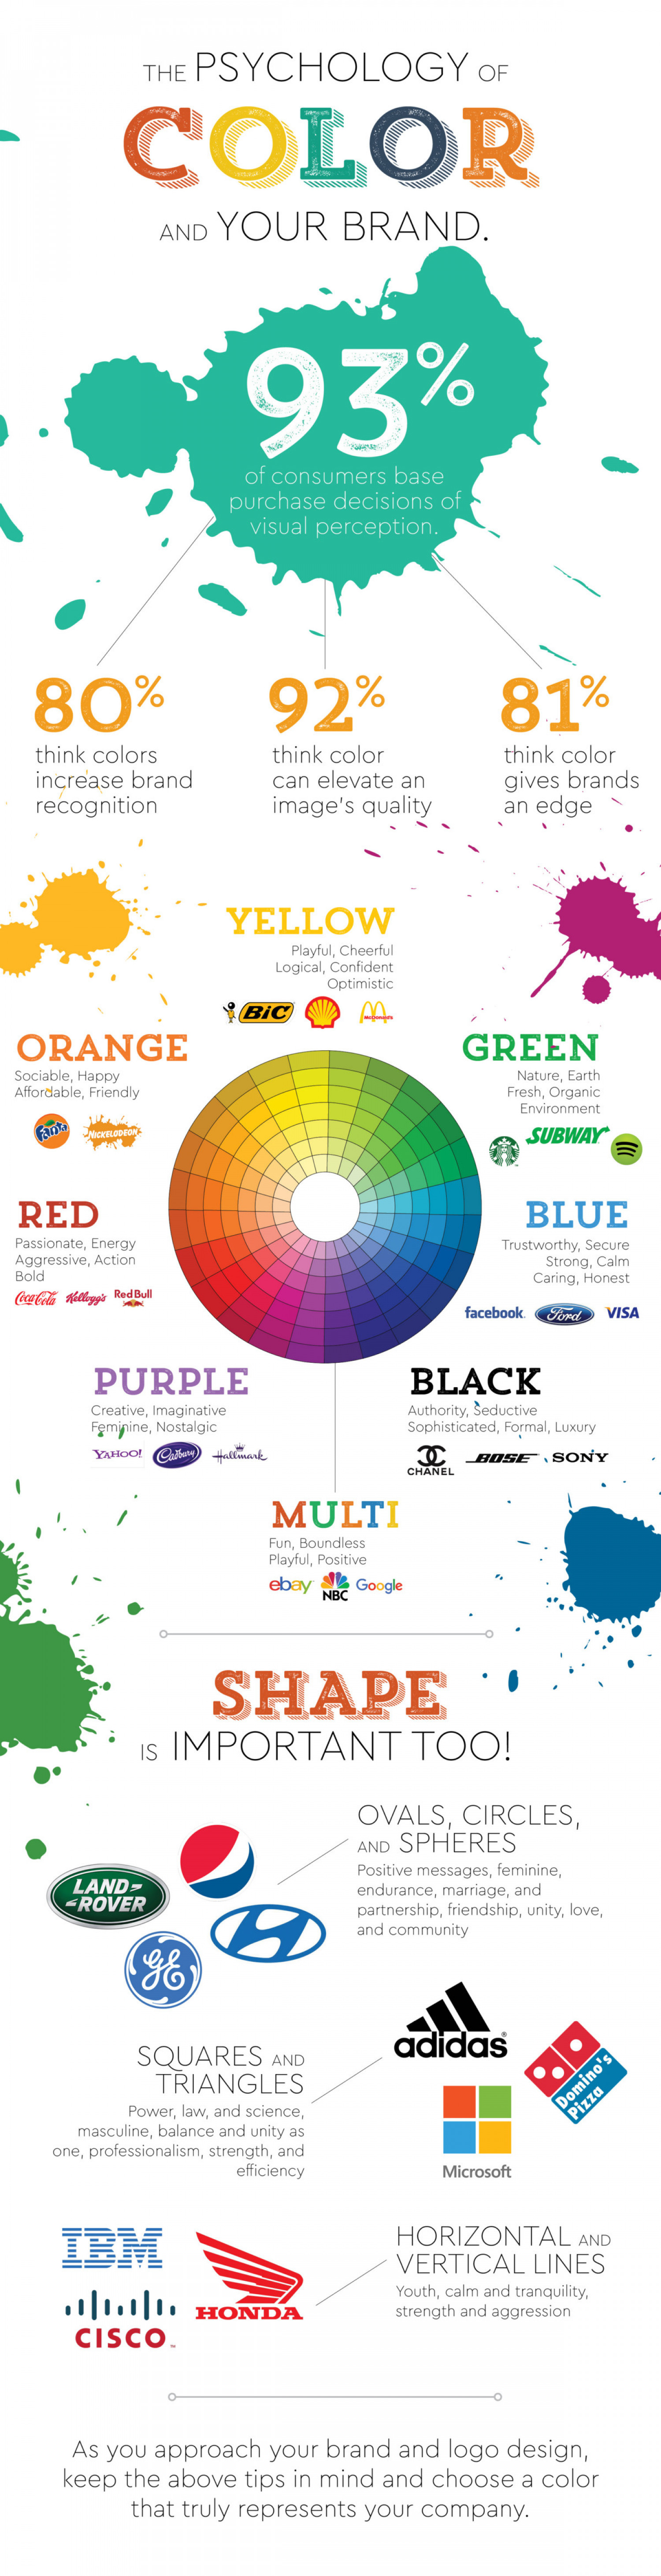 The Psychology of Colors in Logo and Brand Design Infographic